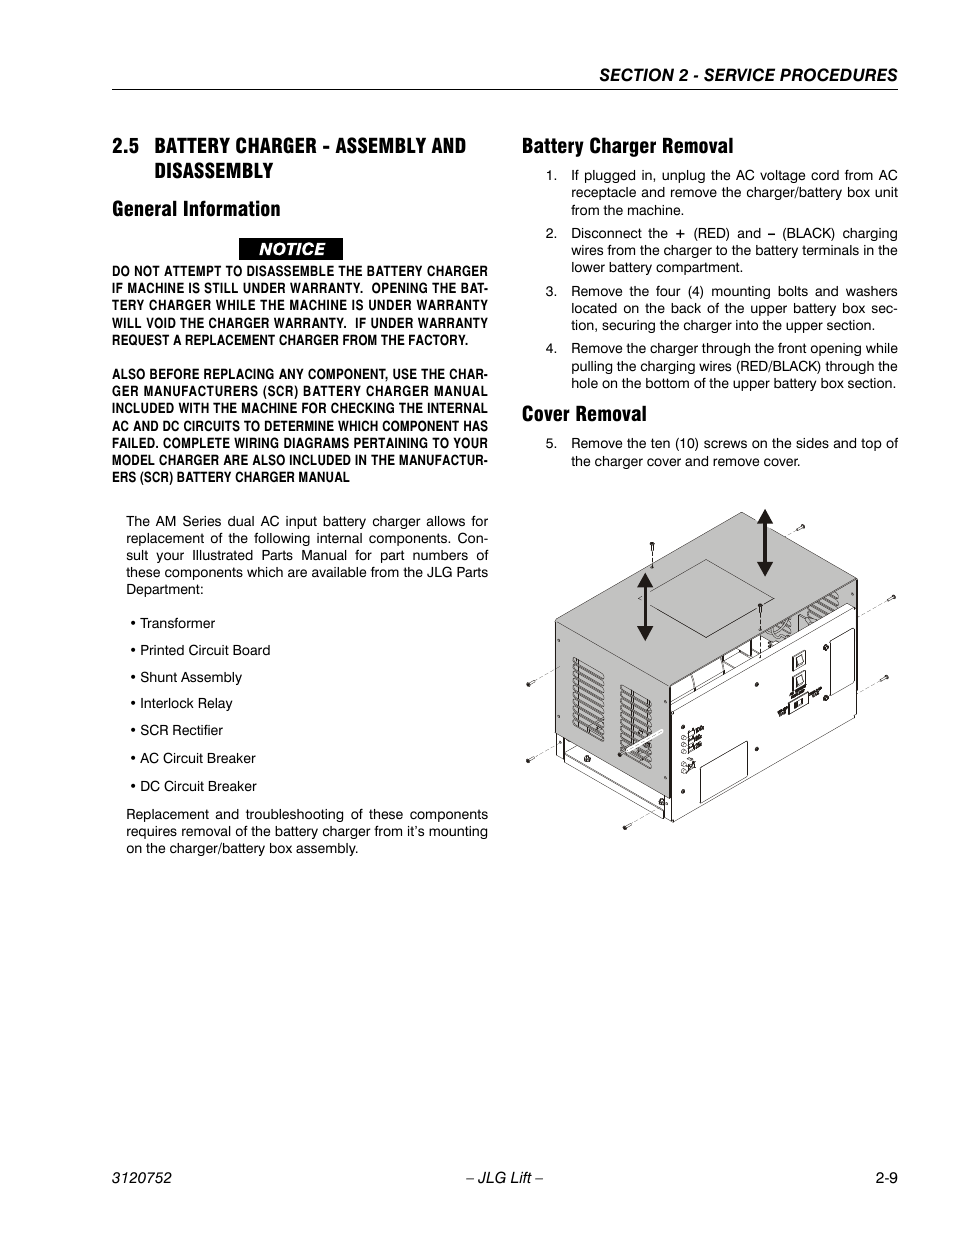 Jlg Battery Charger Wiring Schematic Electrical Diagrams Diagram 5 Assembly And Disassembly General Information Marine Switch